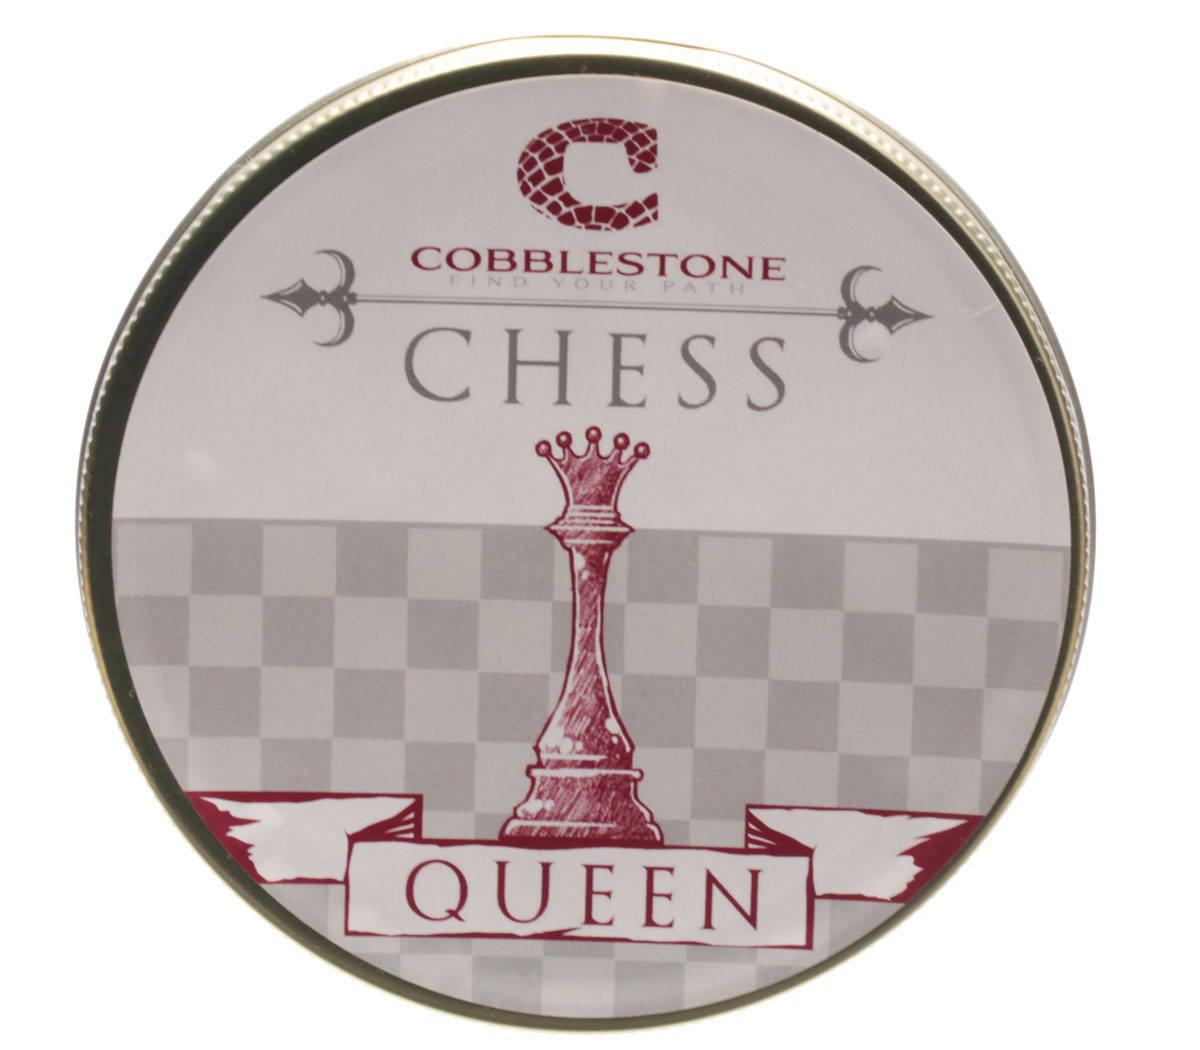 Cobblestone Chess Queen 1.75oz